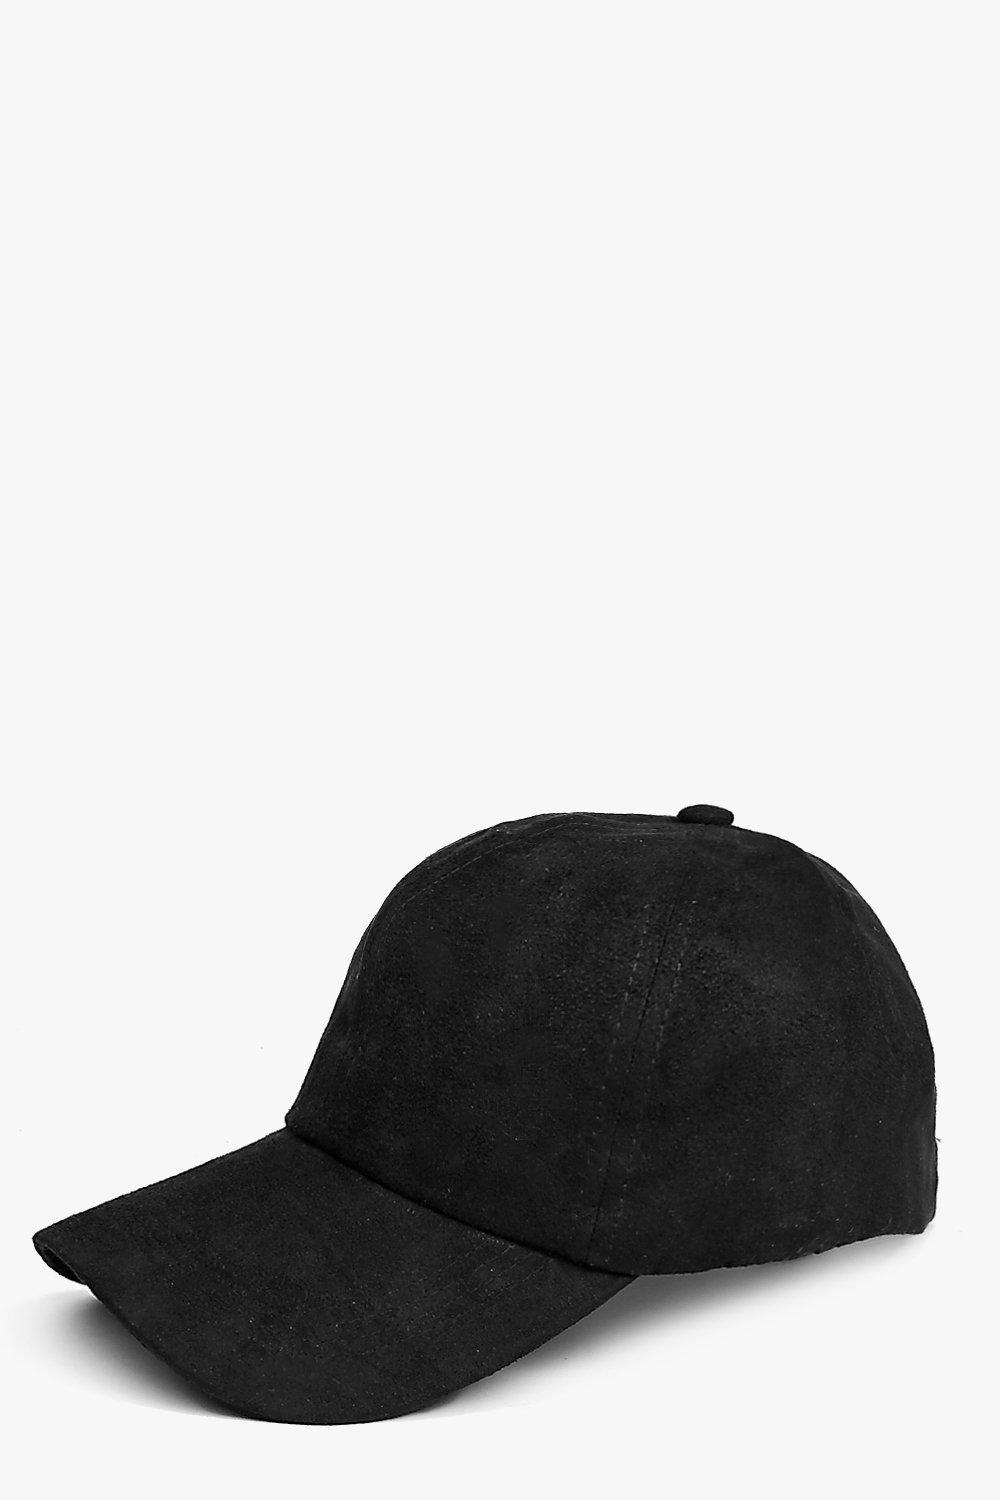 Suedette Baseball Cap - black - Stay snug in scarv